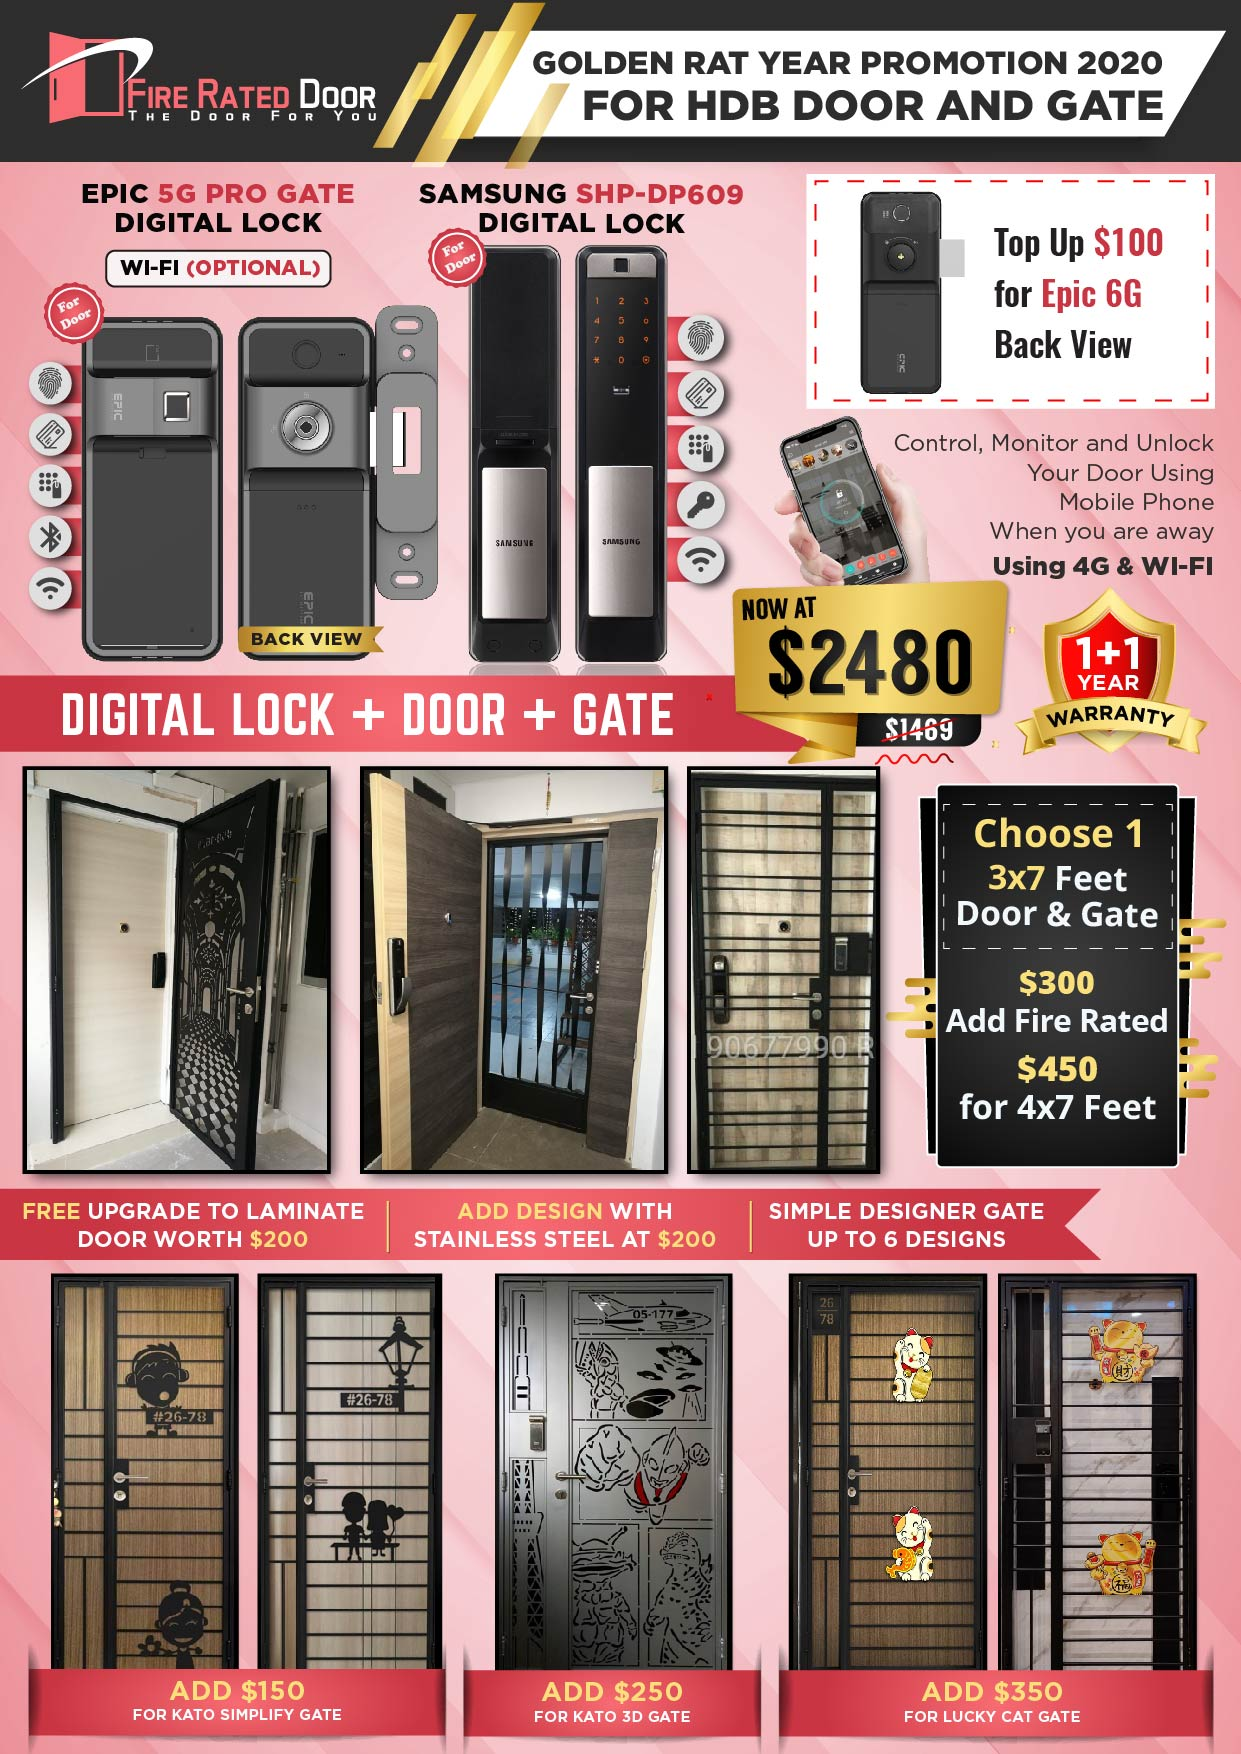 Golden Rat Year HDB Door and Gate Promotion with EPIC 5G PRO and Samsung SHP-DP609 Digital Lock